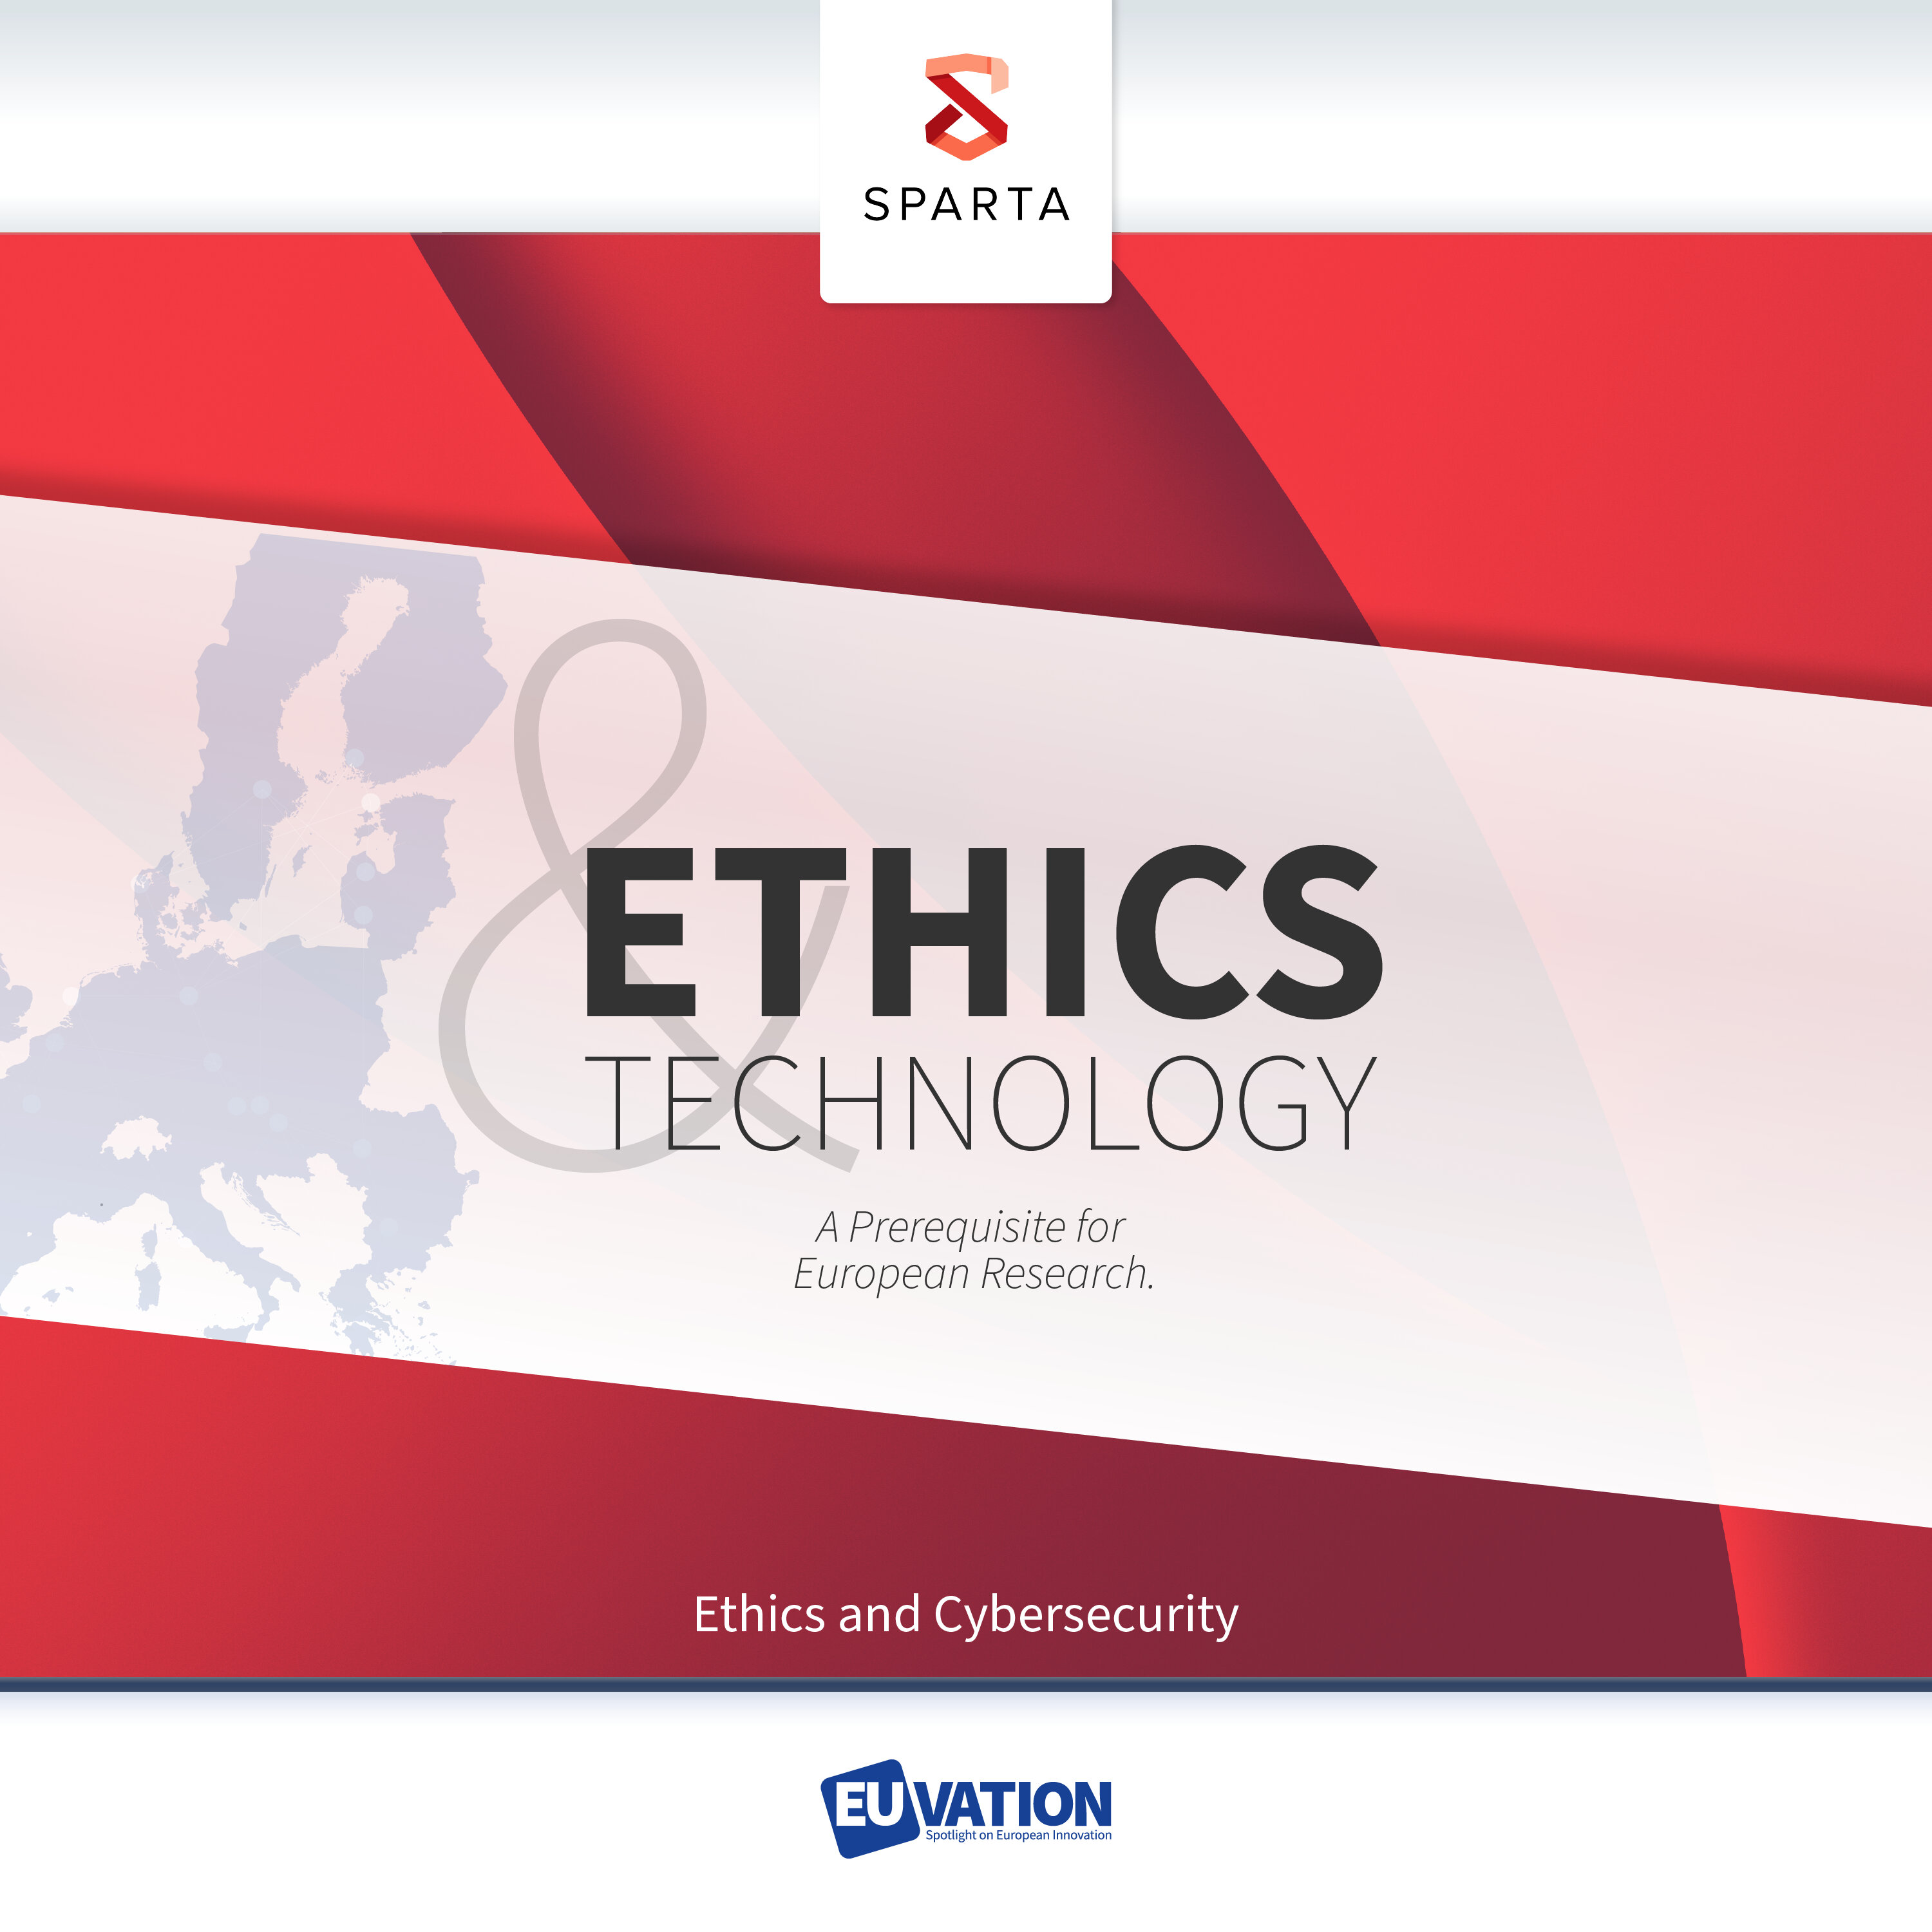 Ethics and Technology (3) – a Prerequisite for European Research: Cybersecurity